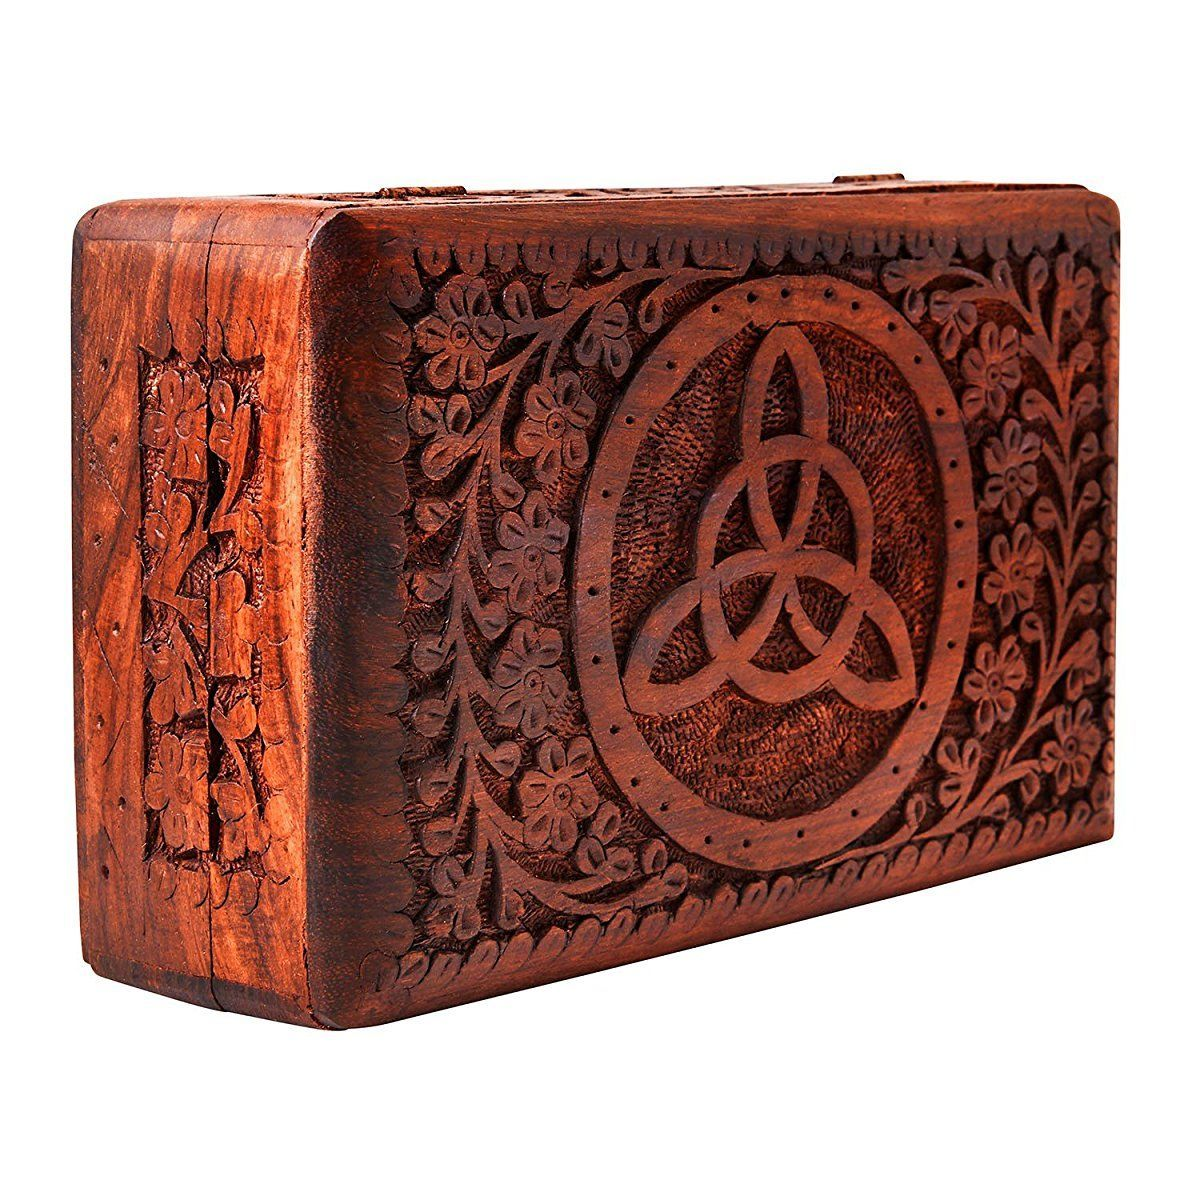 Handmade Decorative Wooden Jewelry Box Jewelry Organizer Keepsake